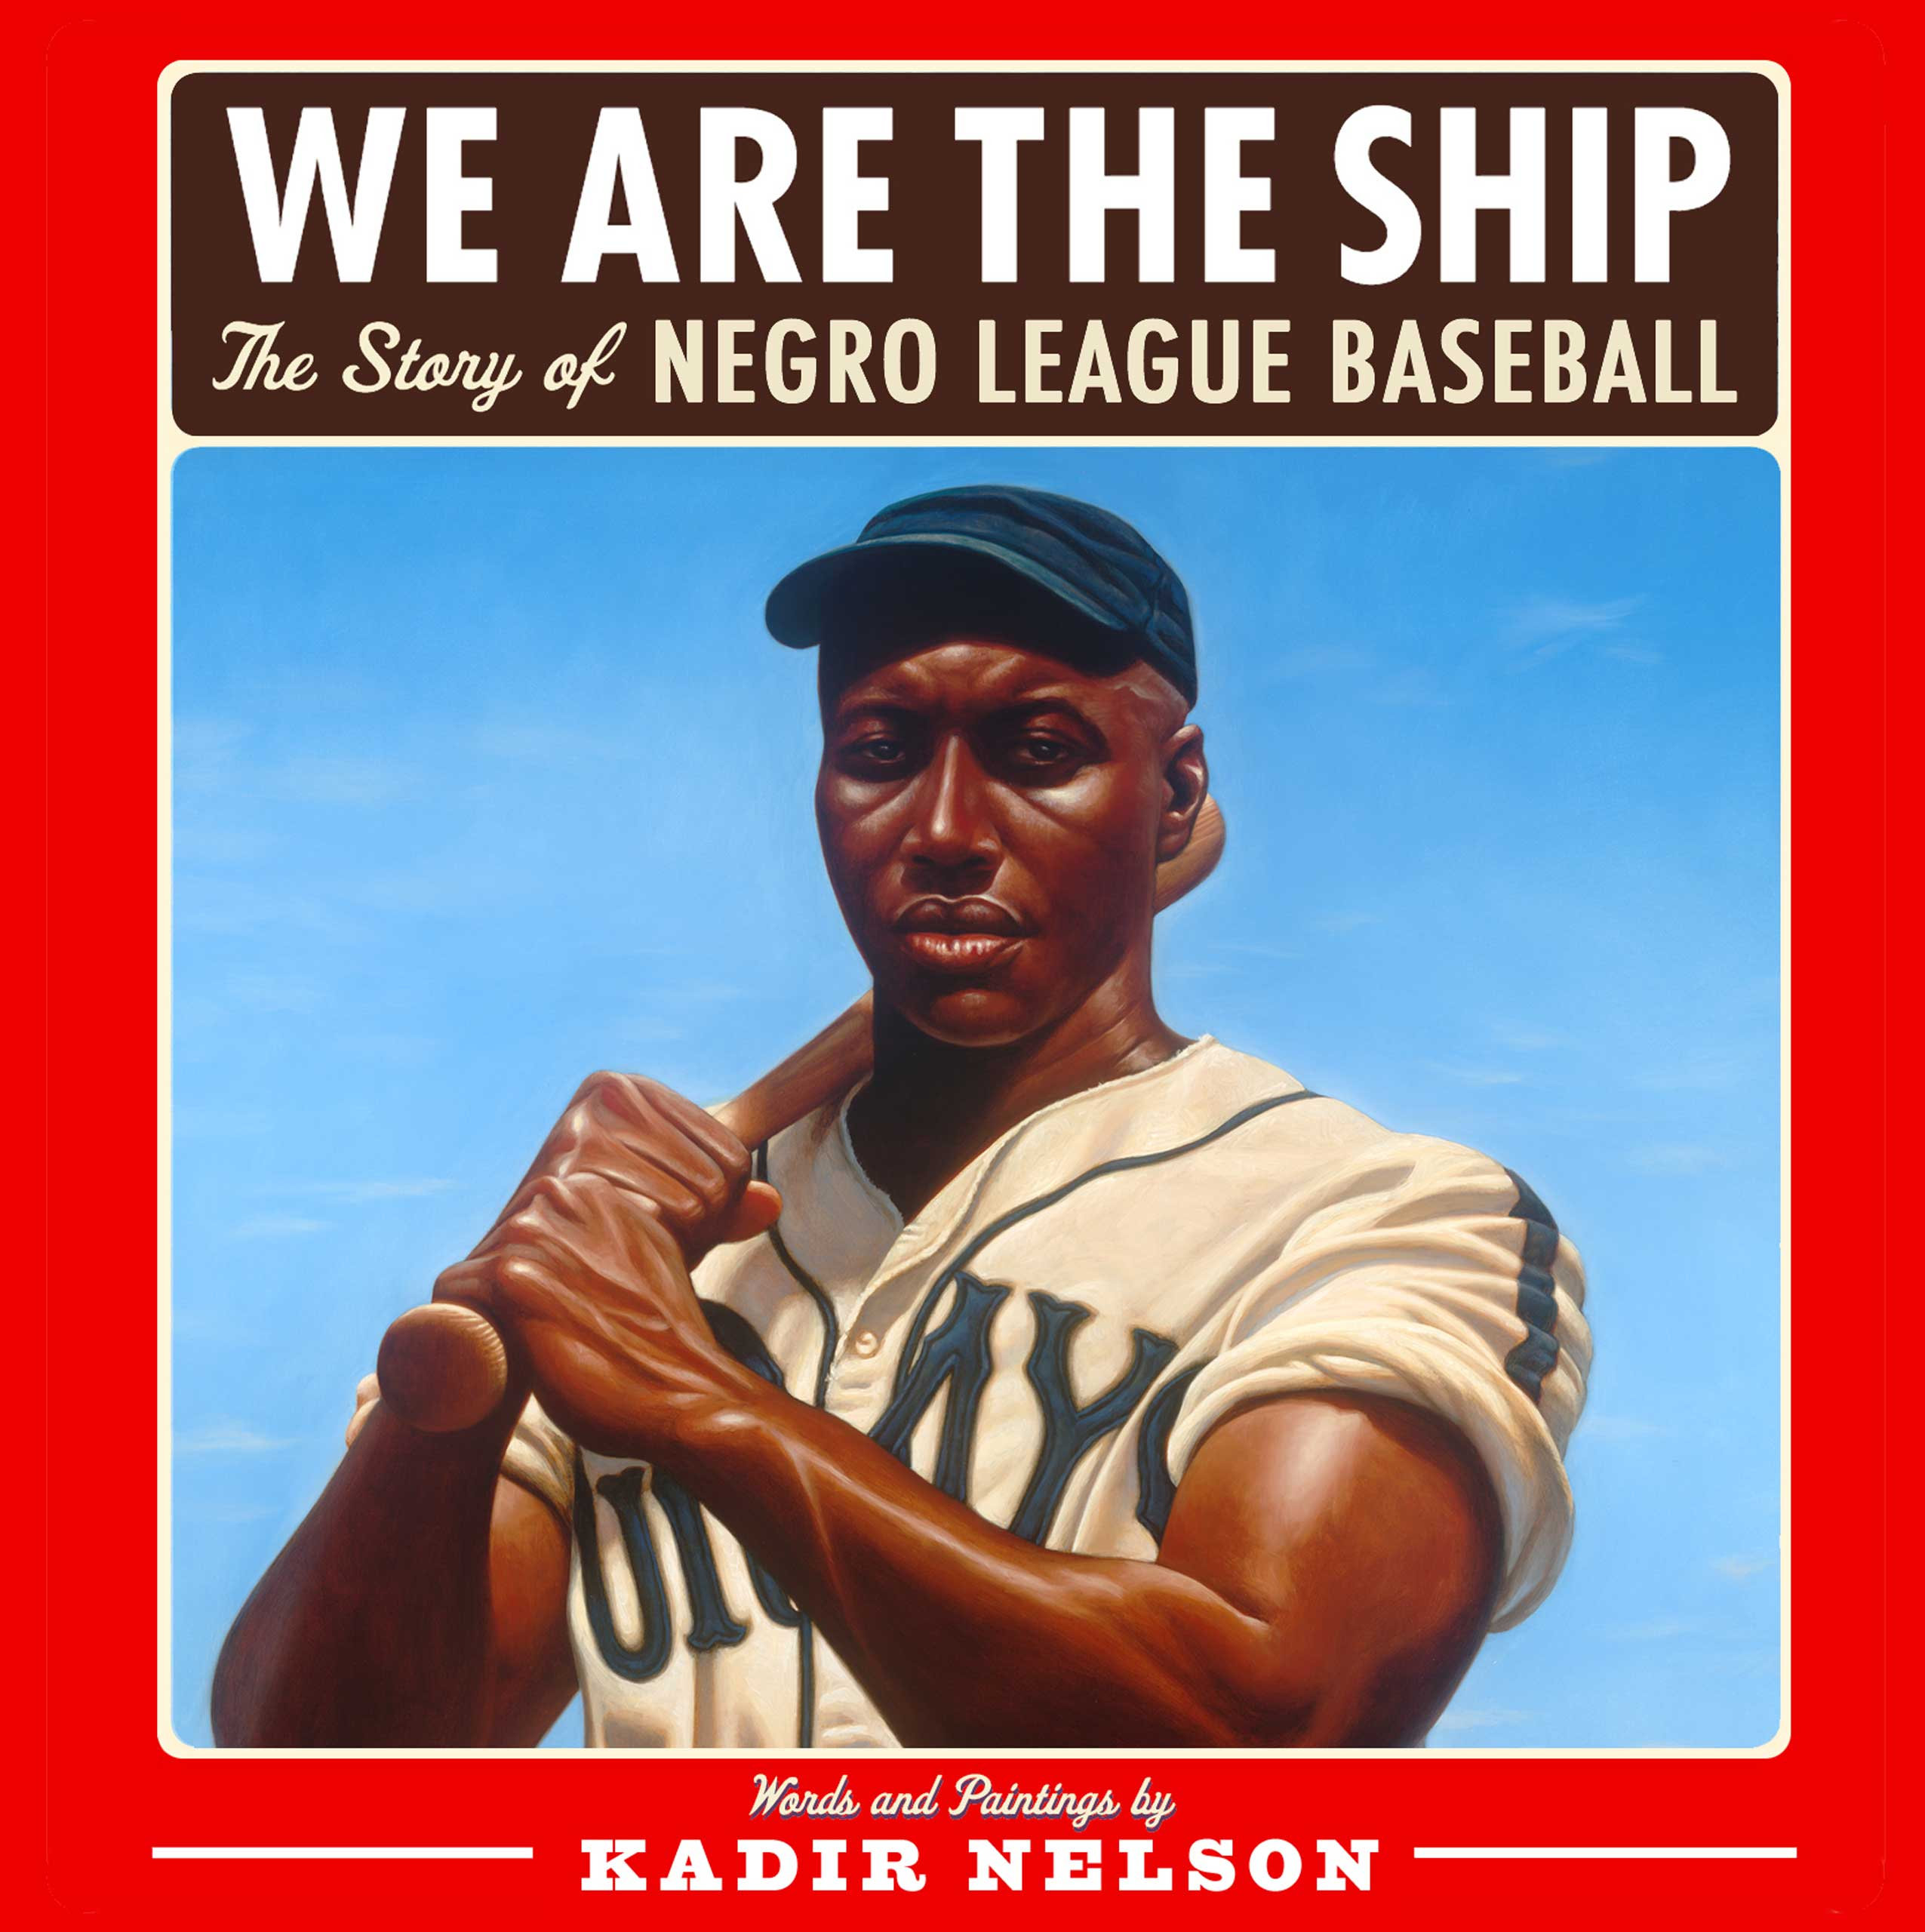 We Are the Ship, by Kadir Nelson.                                                                                                                            This inspiring history of the Negro Leagues honors baseball greats like Satchel Paige and Josh Gibson.                                                                                                                            Buy now: We Are the Ship